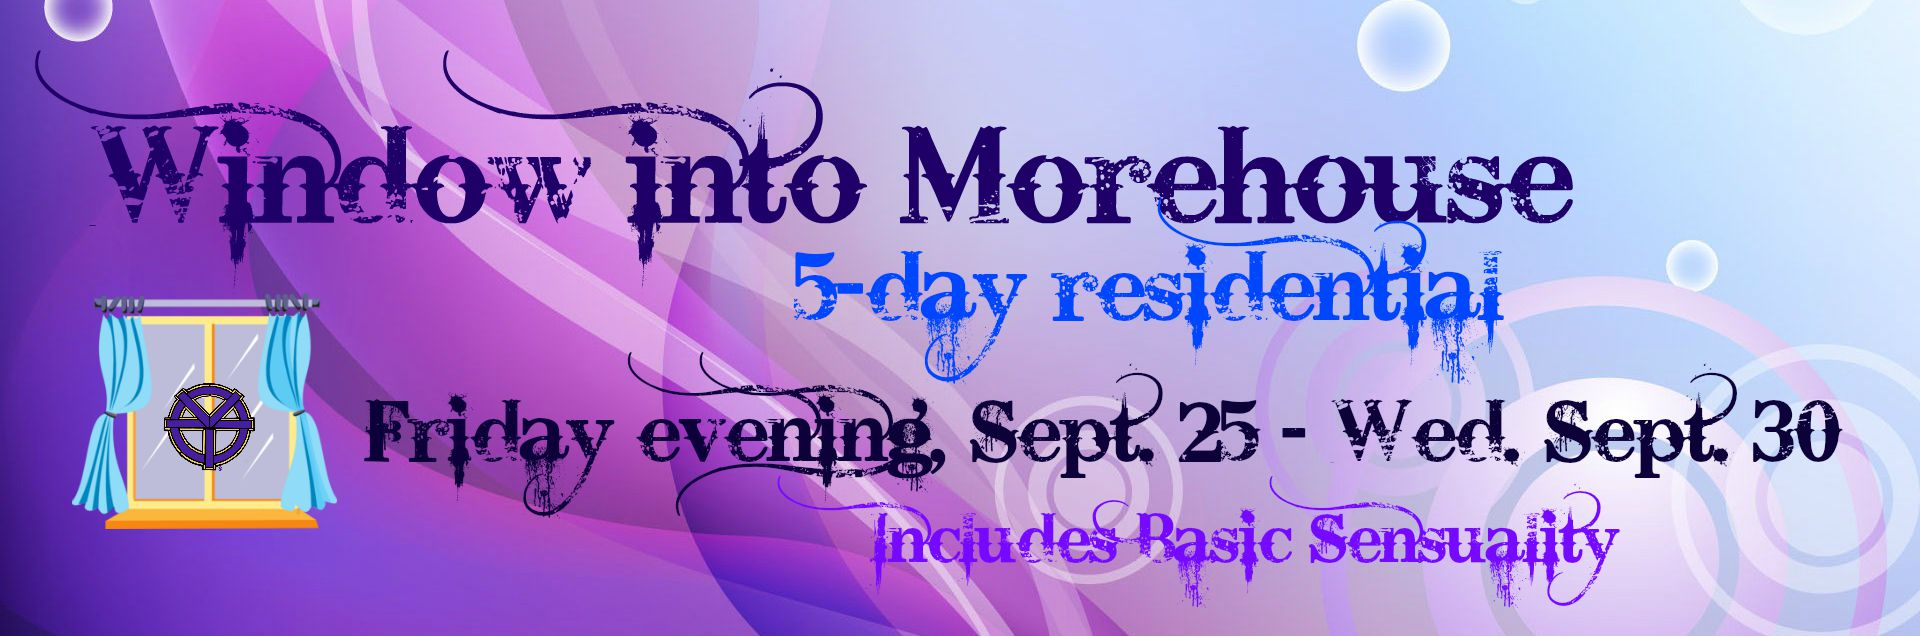 Window into Morehouse - Sept. 25 to 30